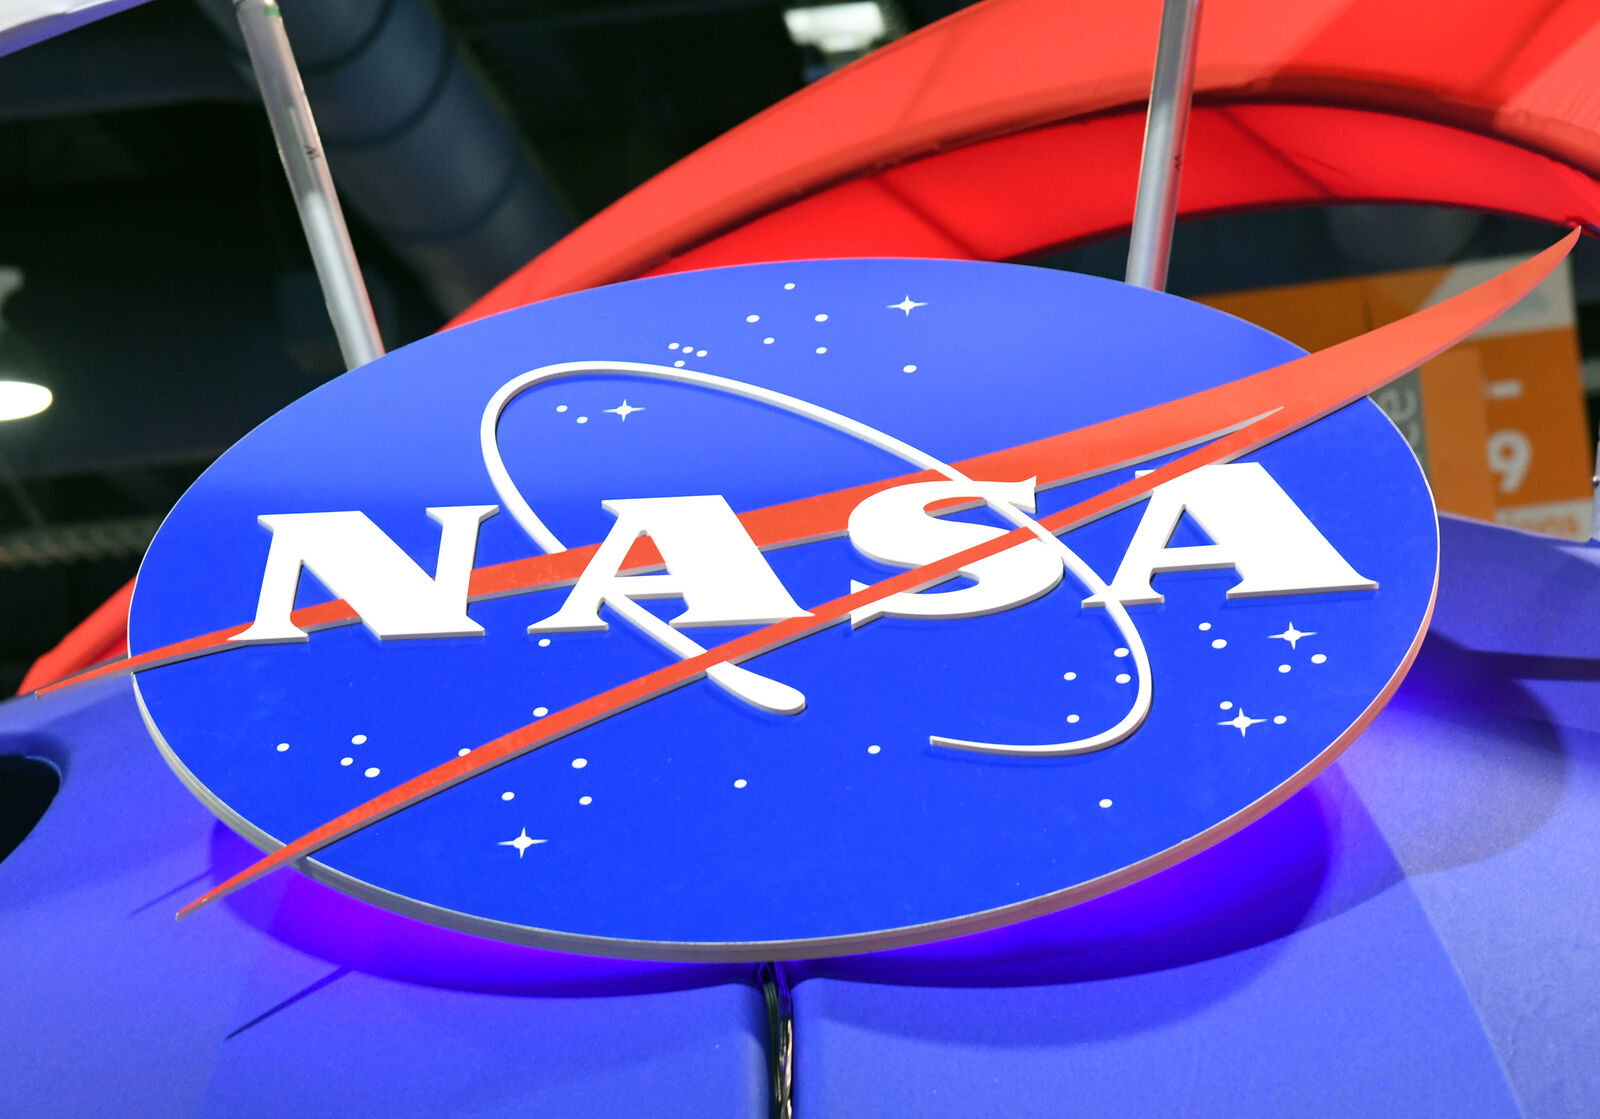 FILE – The NASA logo is displayed at the agency's booth during CES 2018 at the Las Vegas Convention Center on January 11, 2018 in Las Vegas, Nevada. (Photo by Ethan Miller/Getty Images)